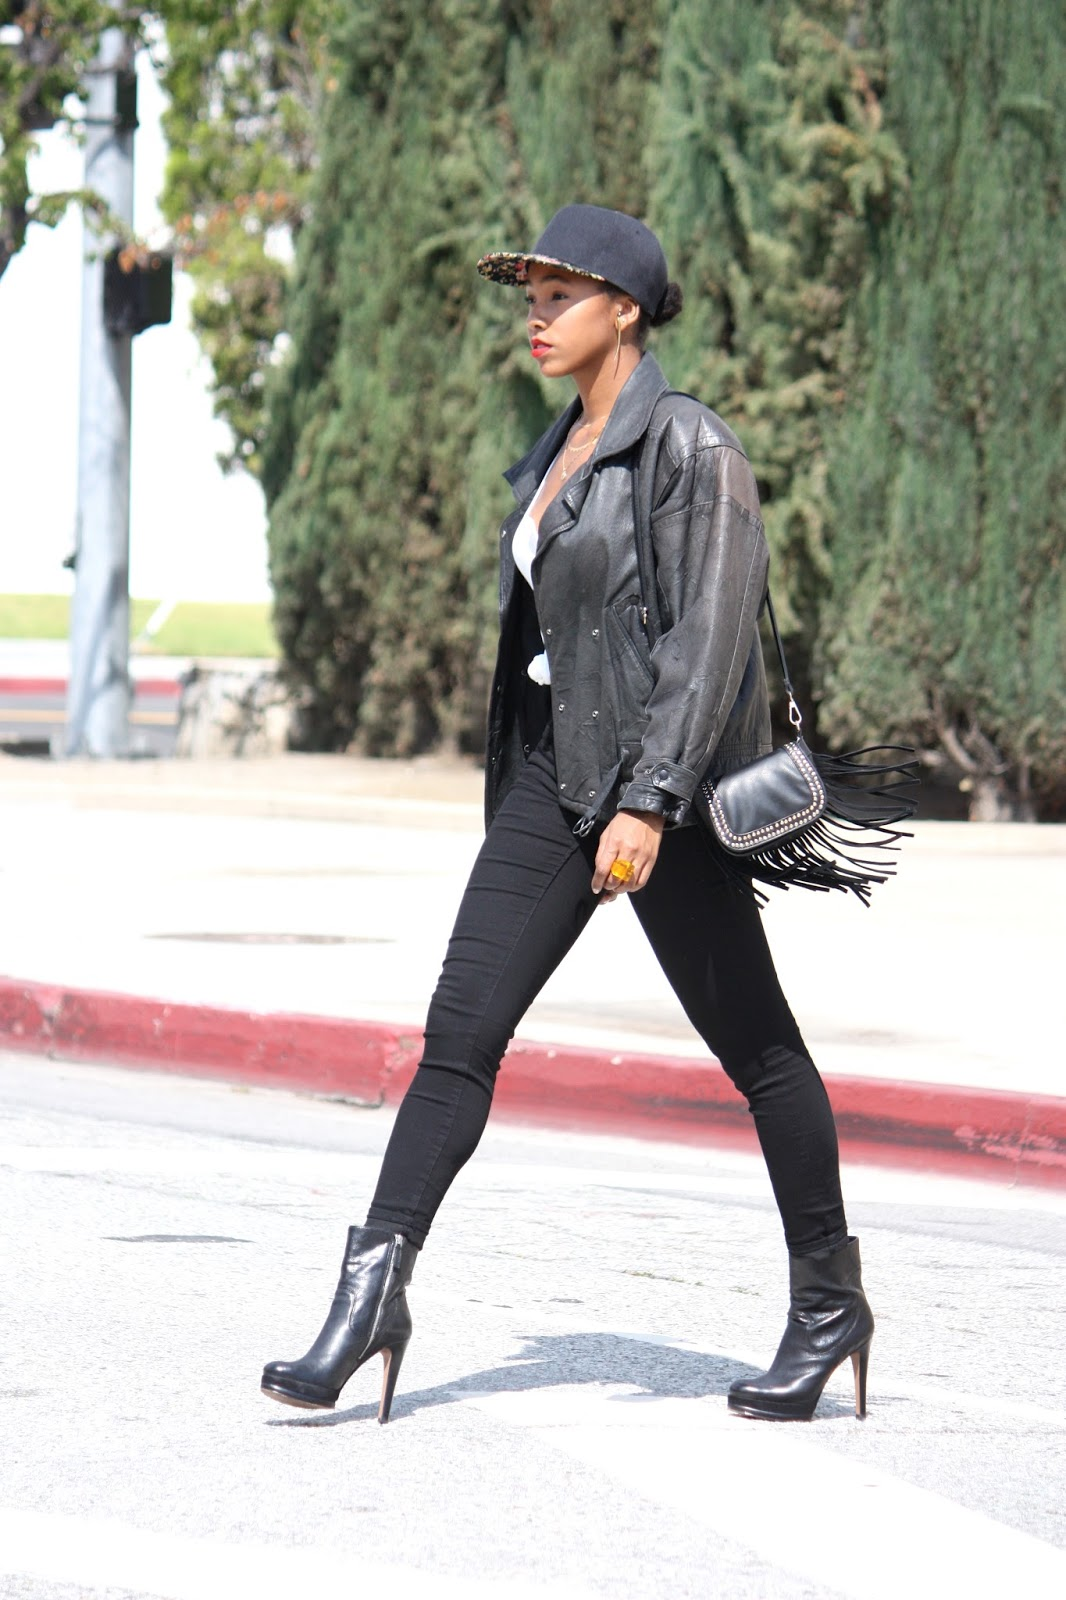 Marquise C Brown personal style fashion blogger